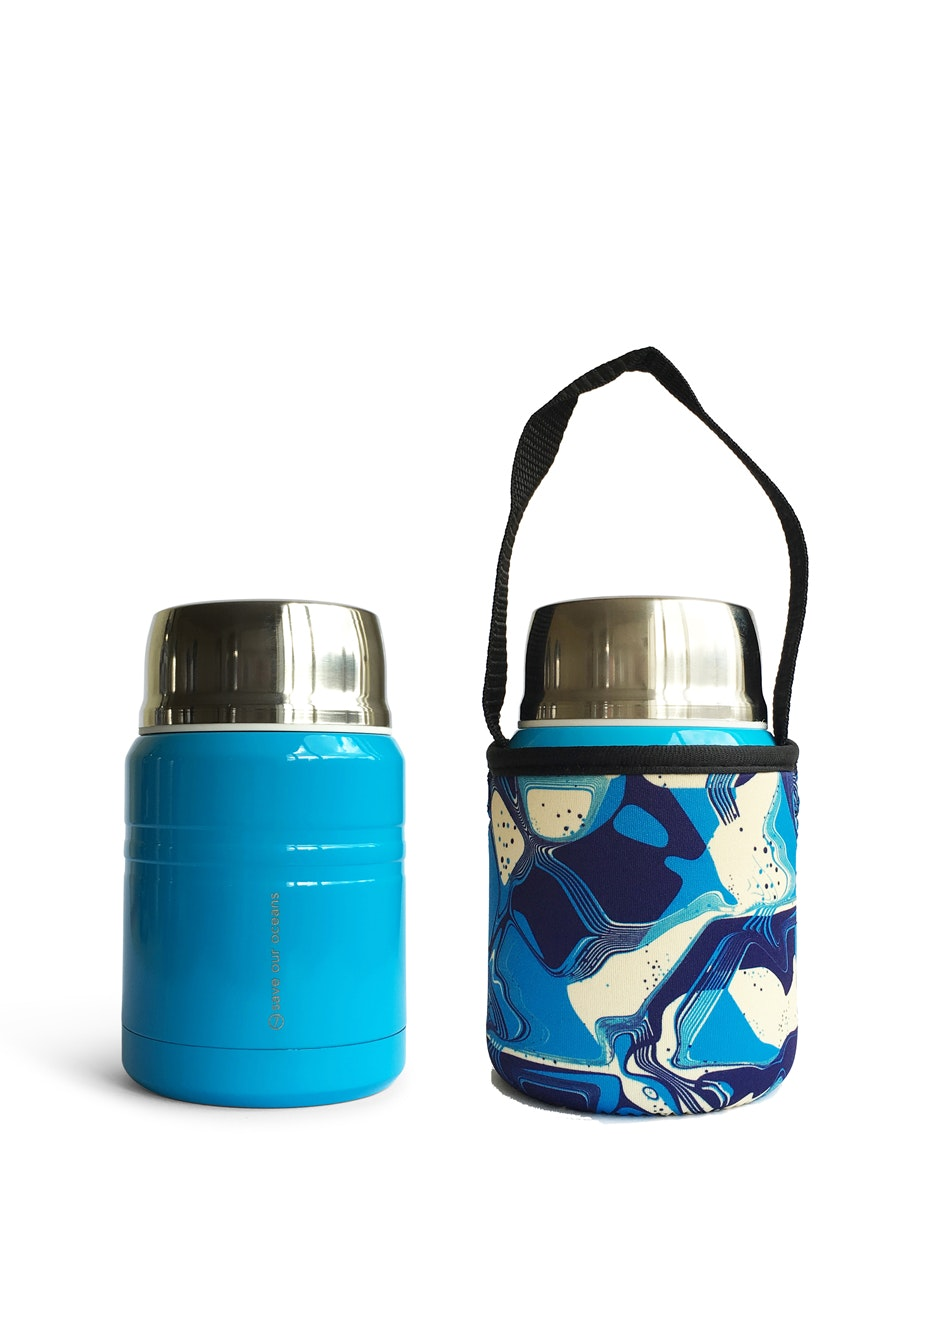 BBBYO - Foodie Insulated lunch container + carry cover 500 ml (Floral print)- Bright blue